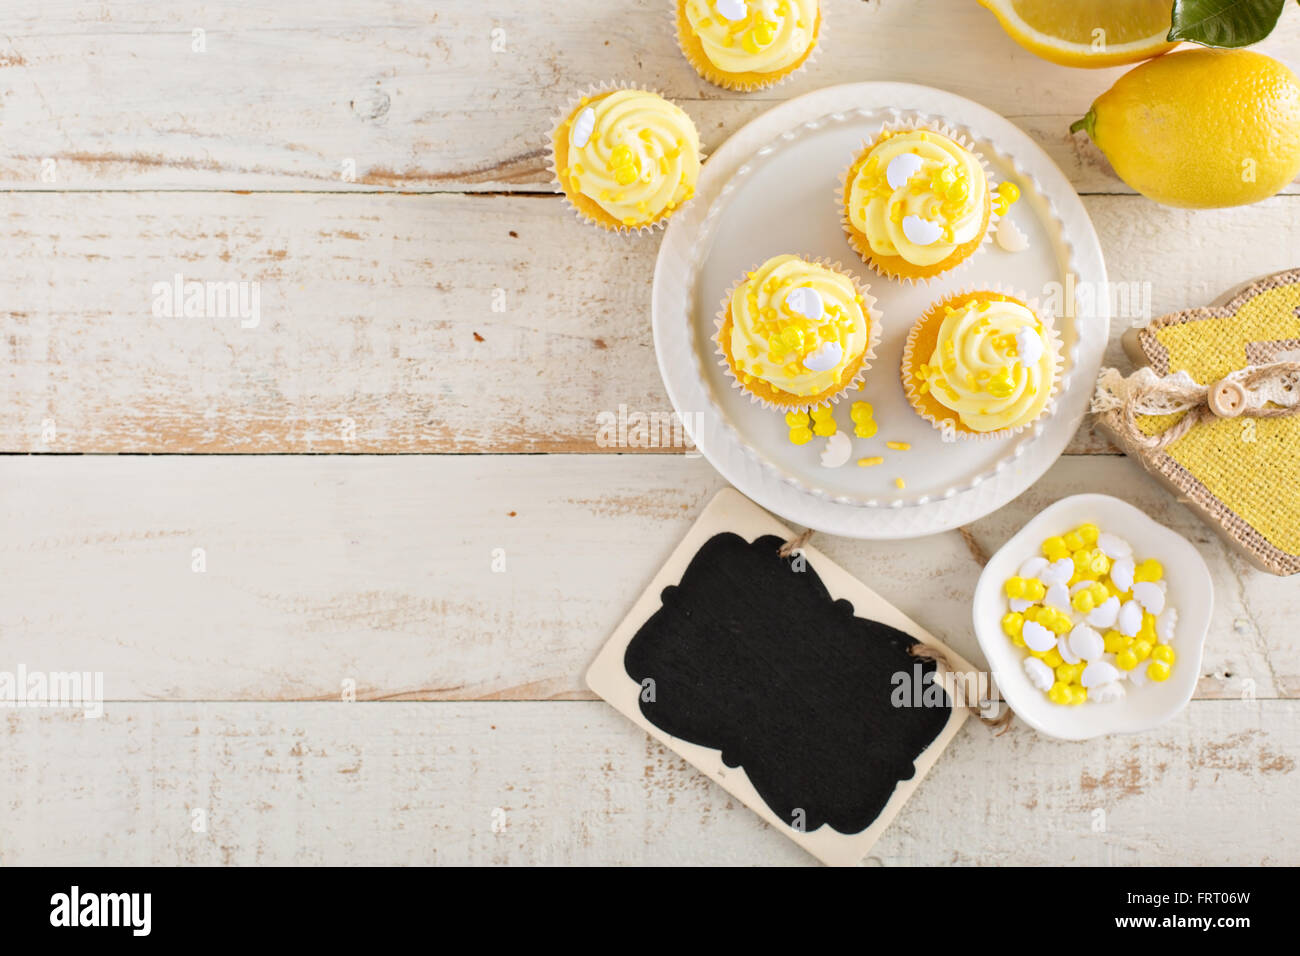 Lemon cupcakes for Easter - Stock Image